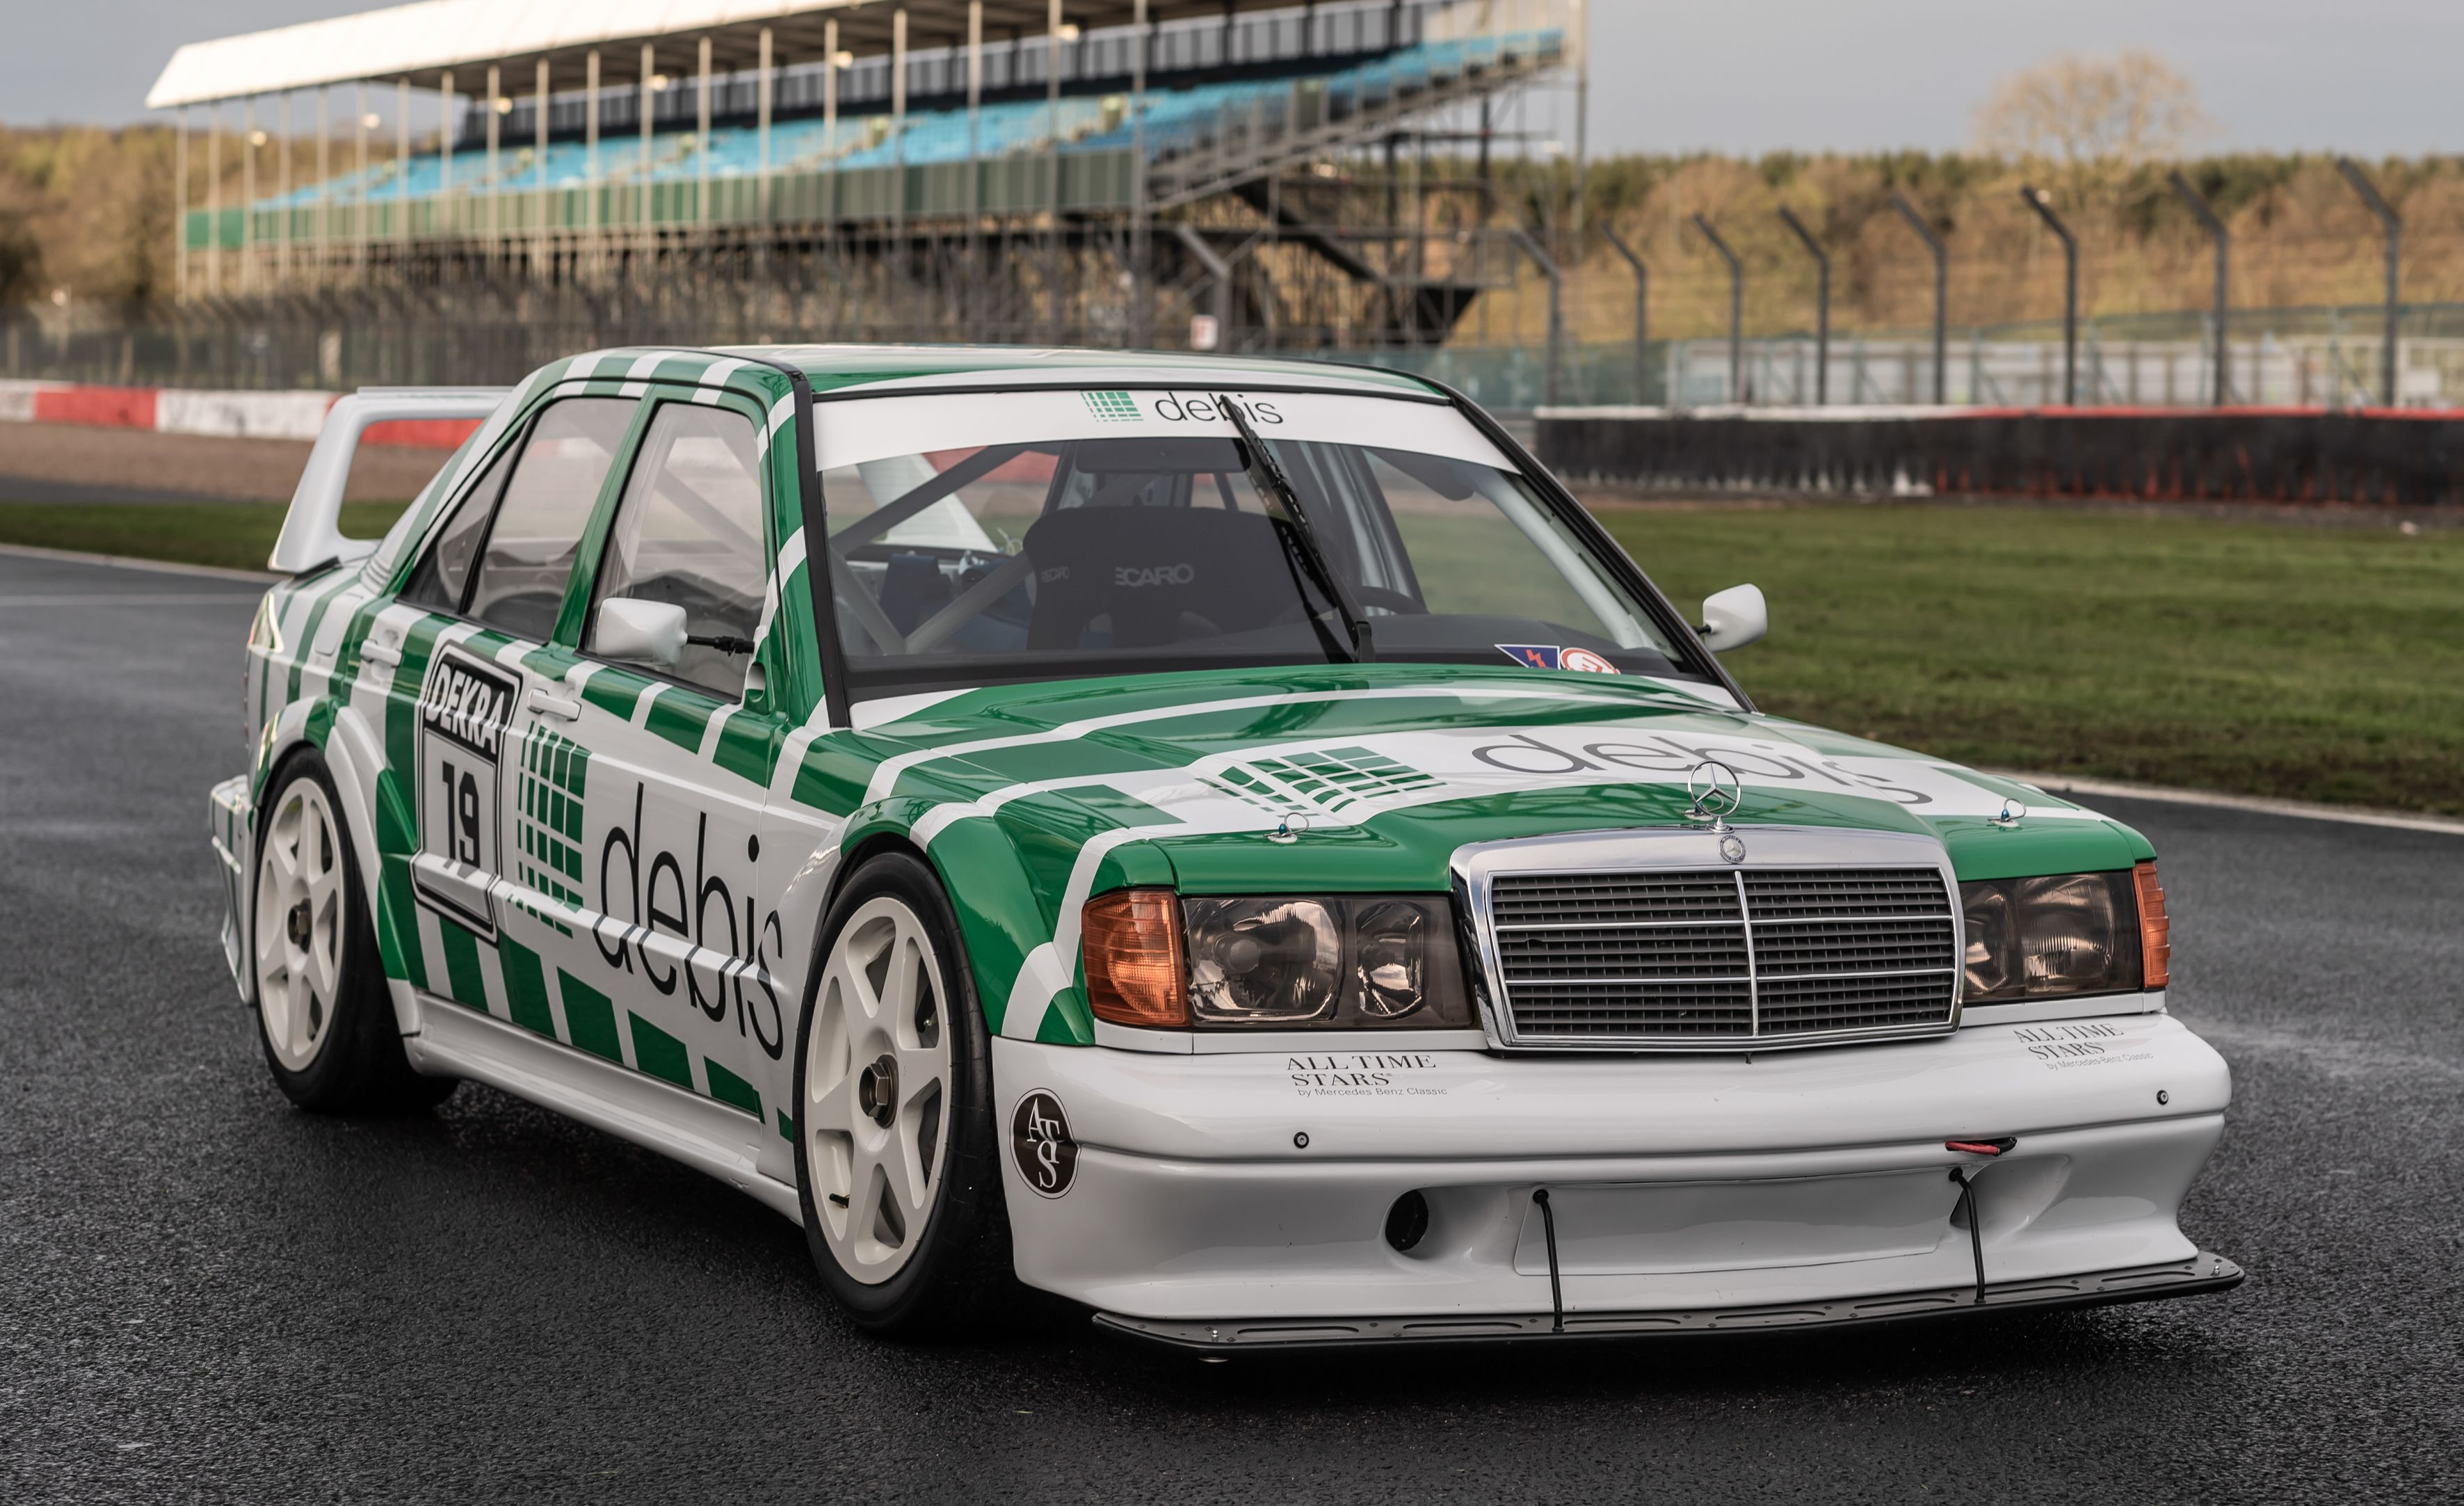 Mercedes-Benz's Greatest Racing Hits in Photos